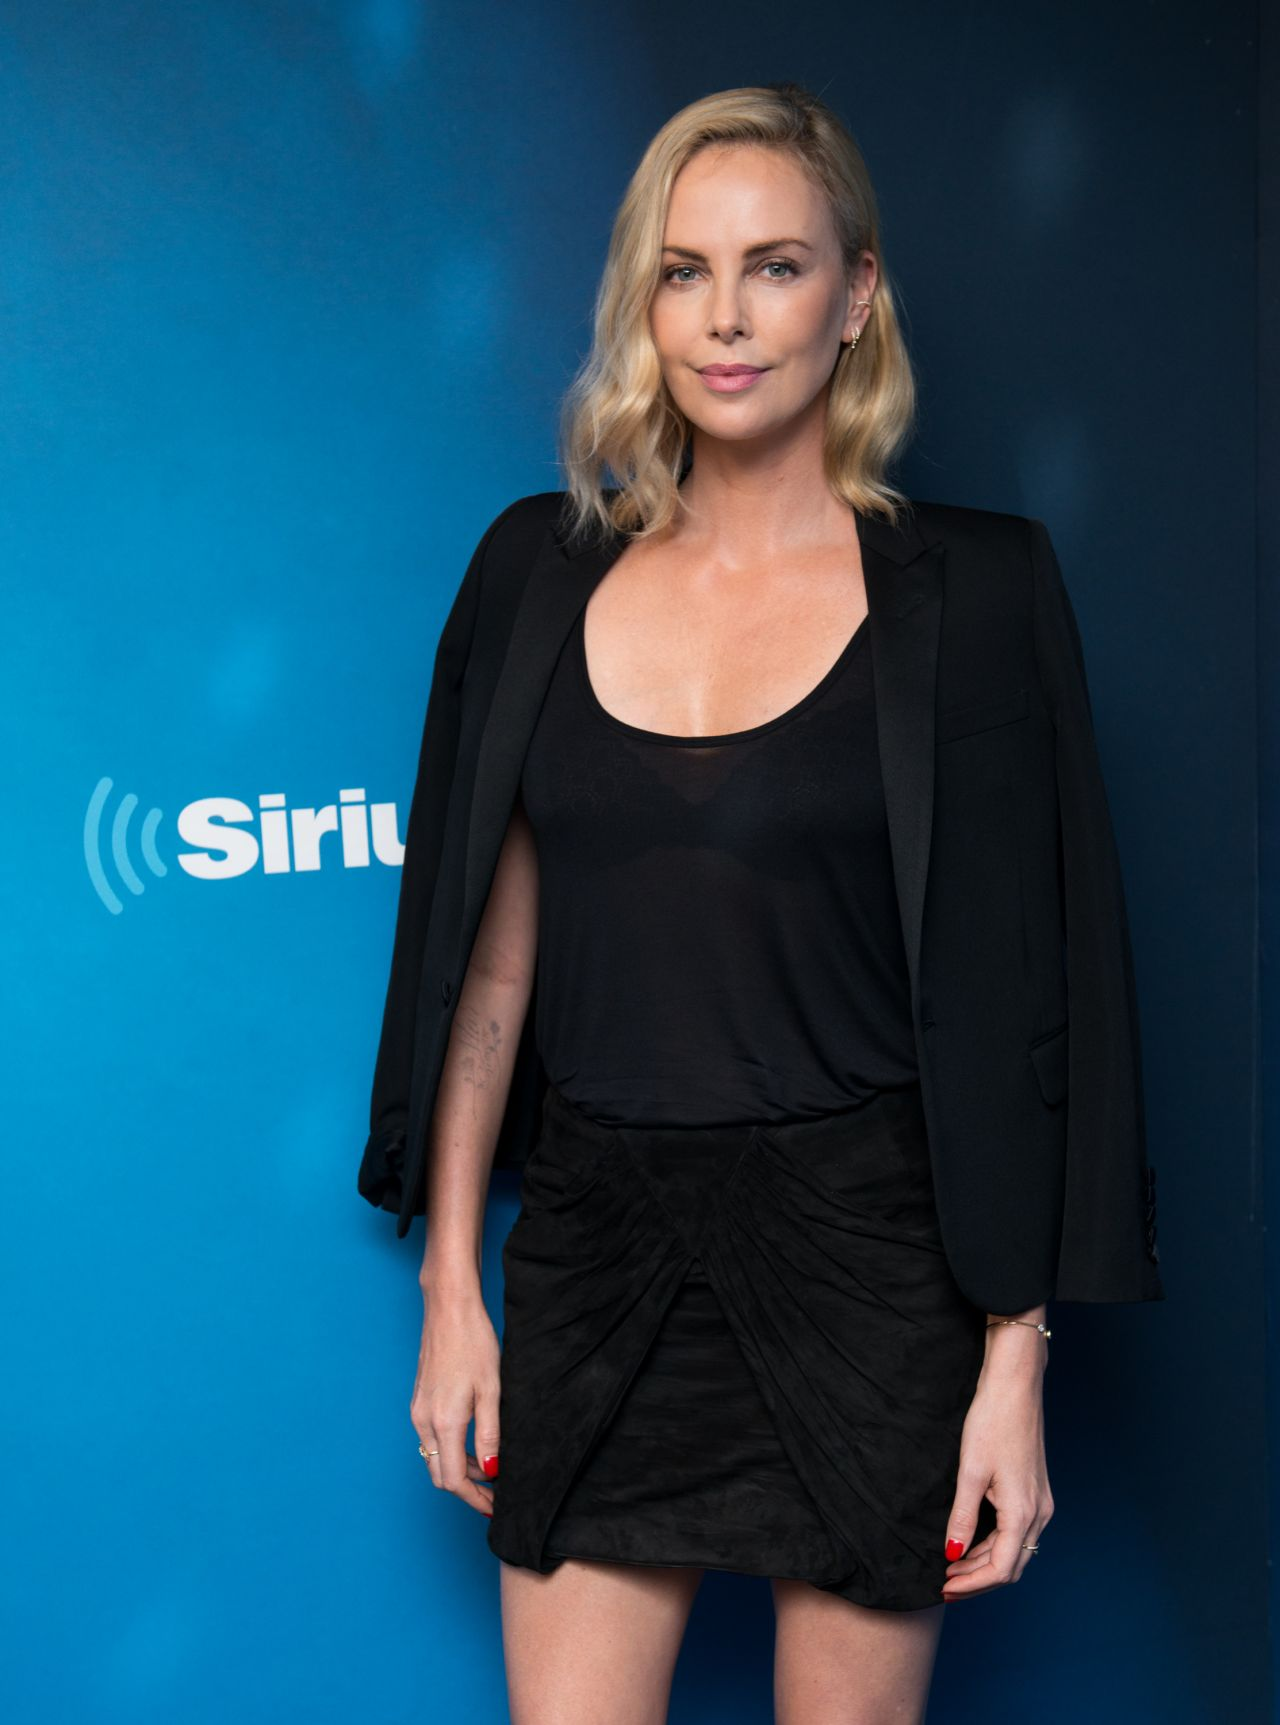 Charlize Theron In Versace For British Vogue: Visits SiriusXM Studios In NYC 07/19/2017